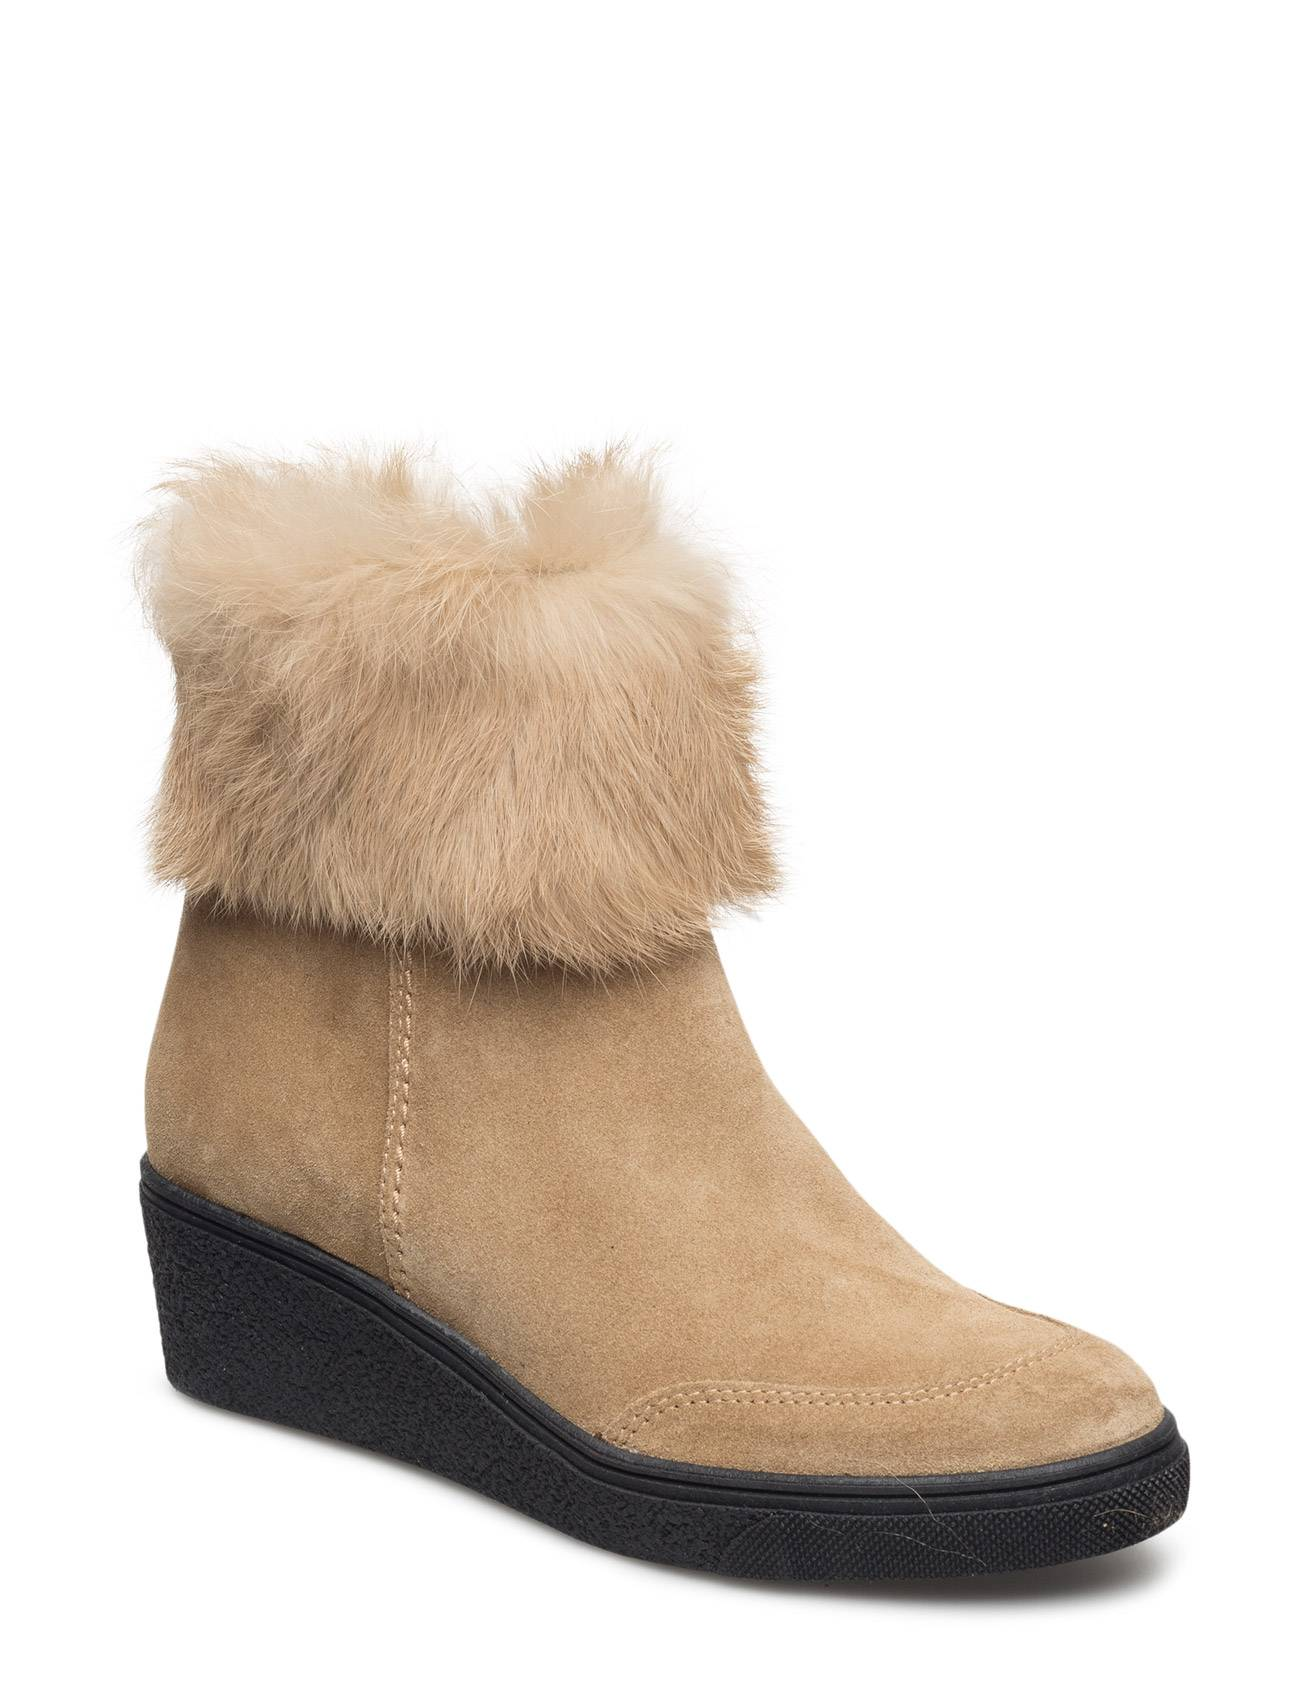 Ilse Jacobsen Ankle Boot W./Fur